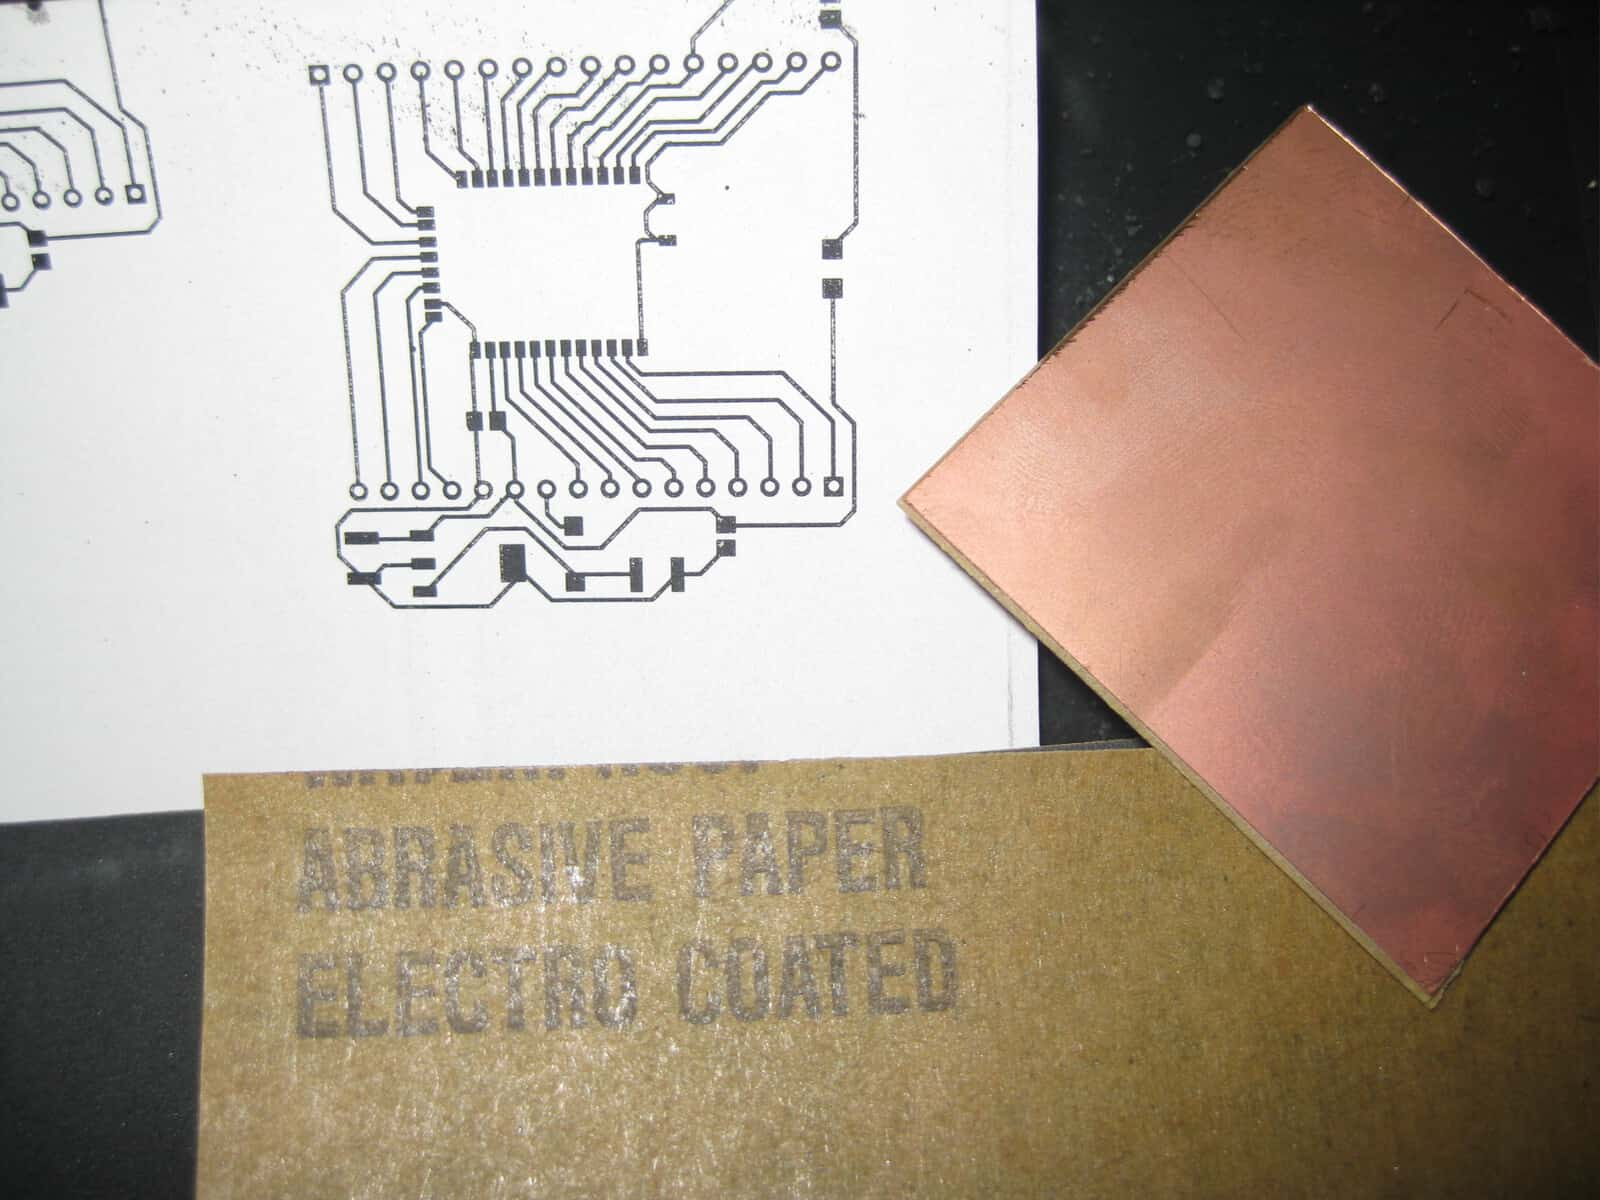 Fabricate Your Own PCB at Home